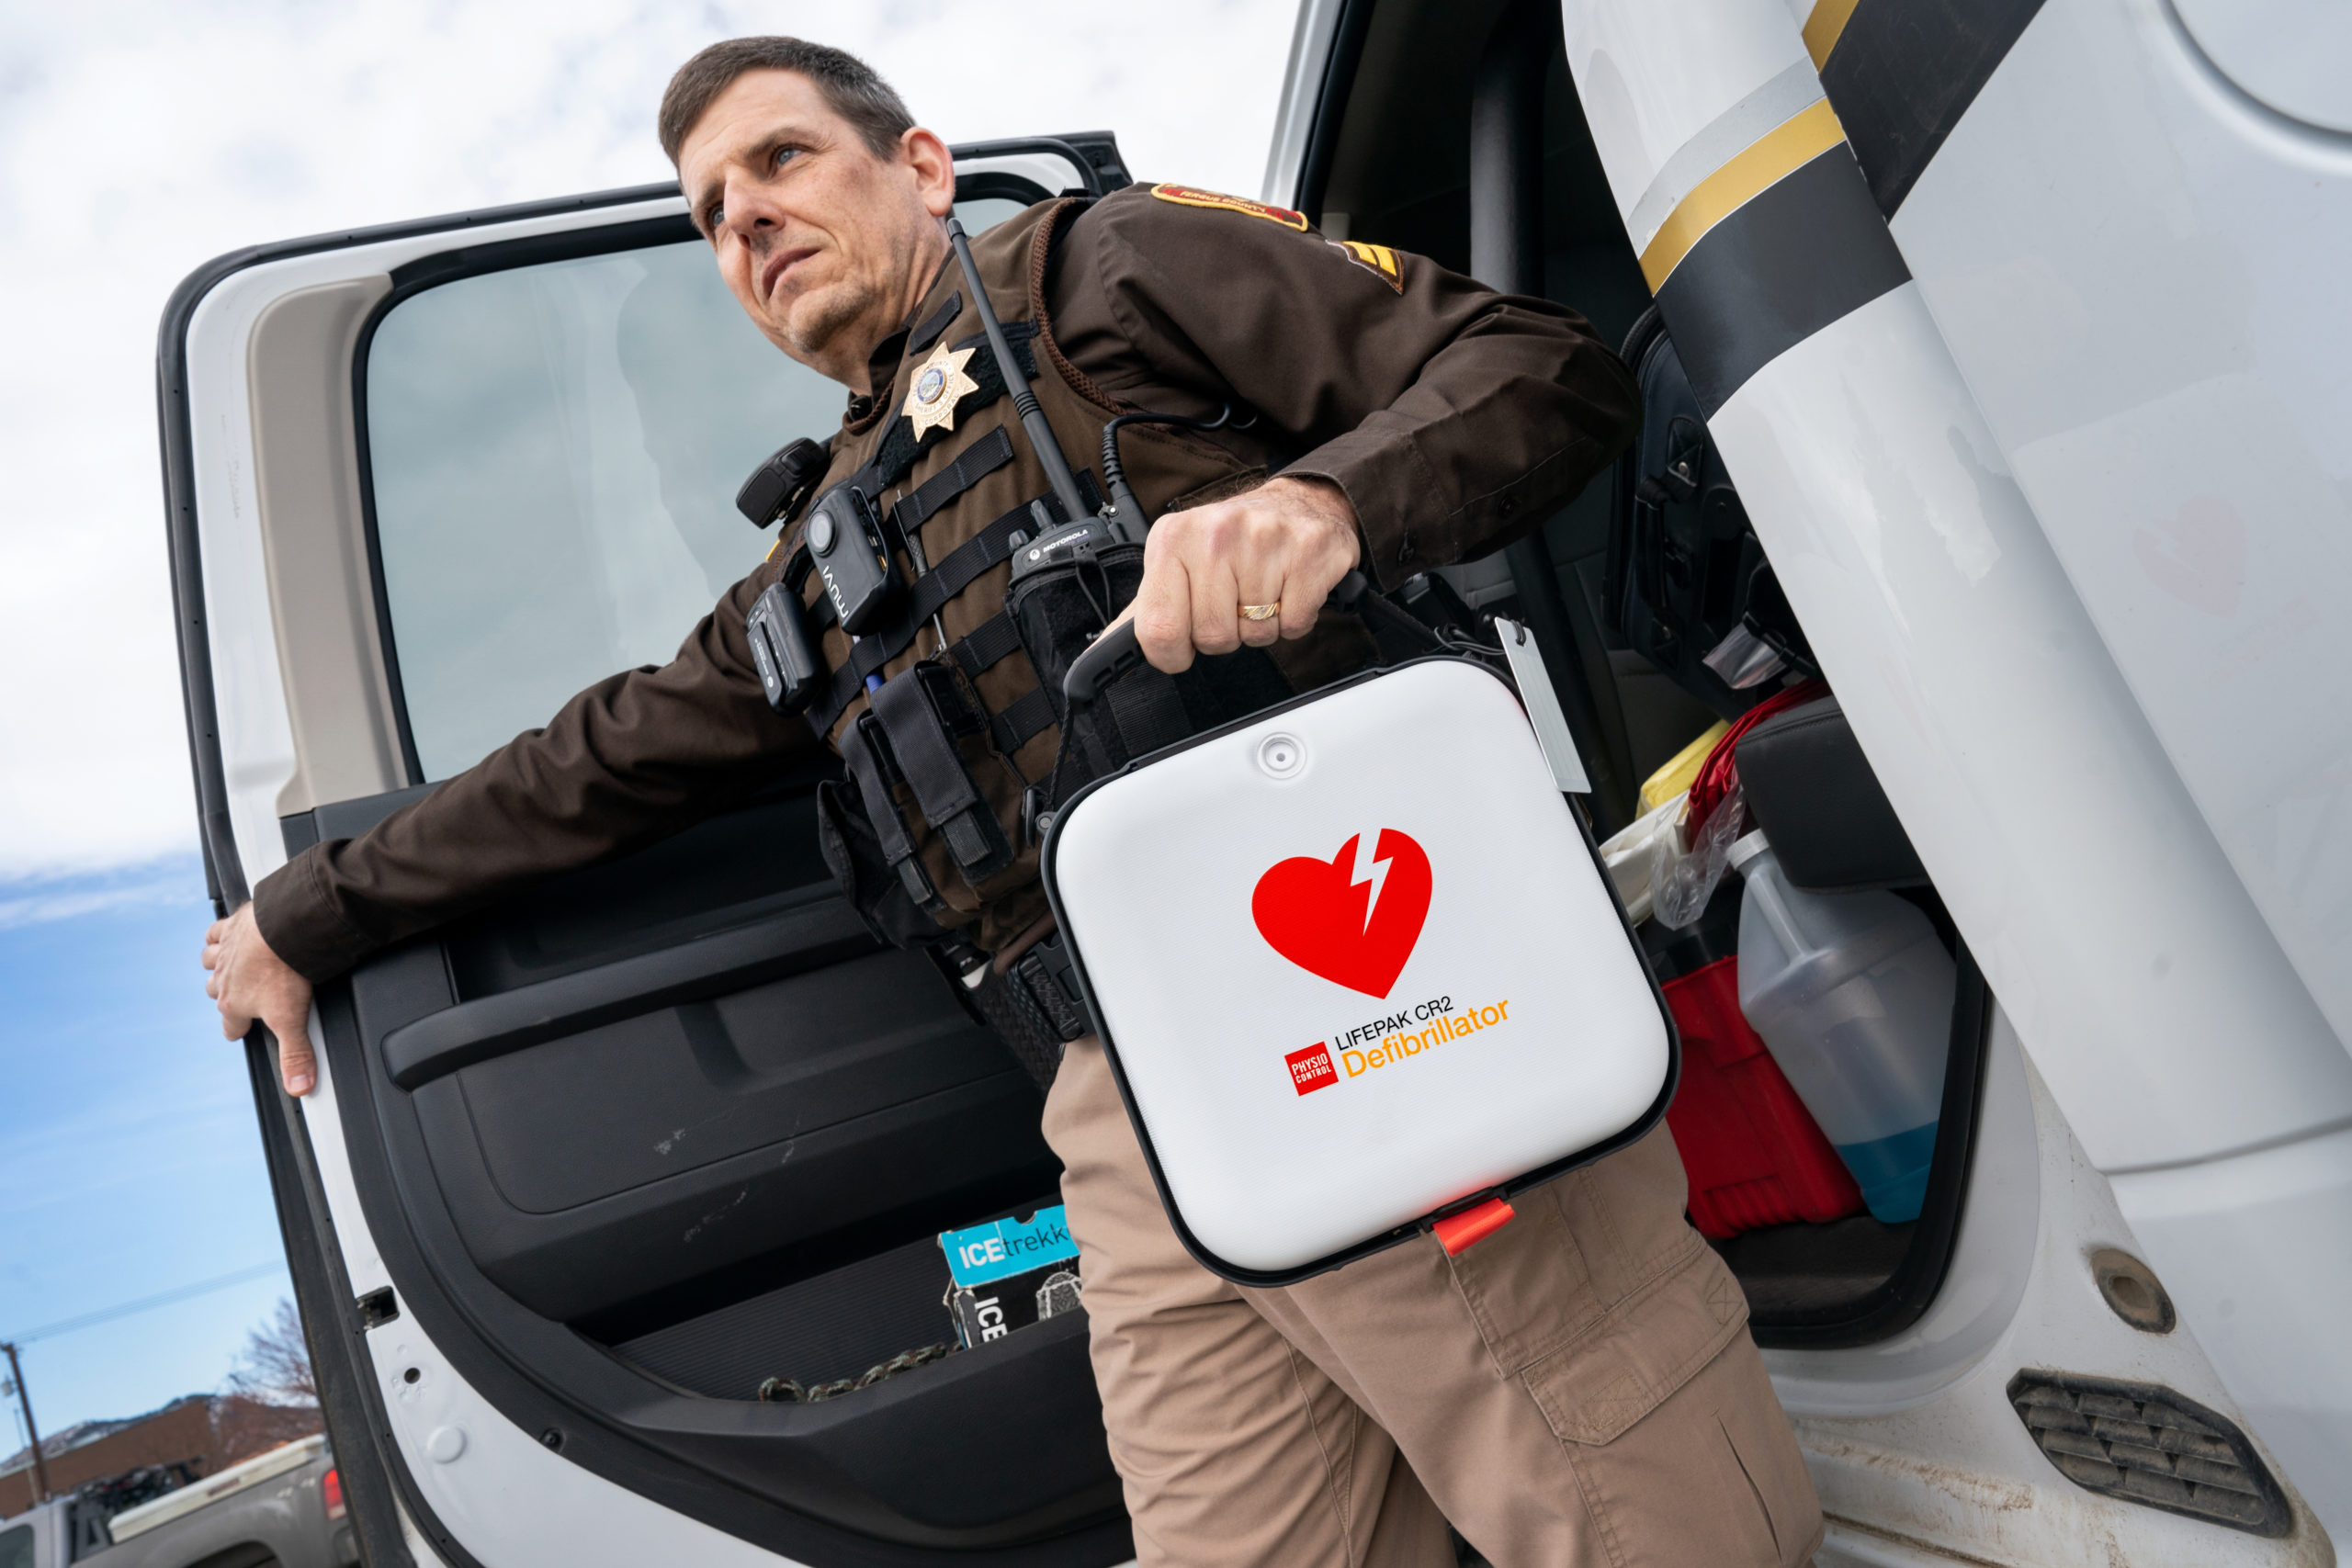 Show law enforcement officer with AED